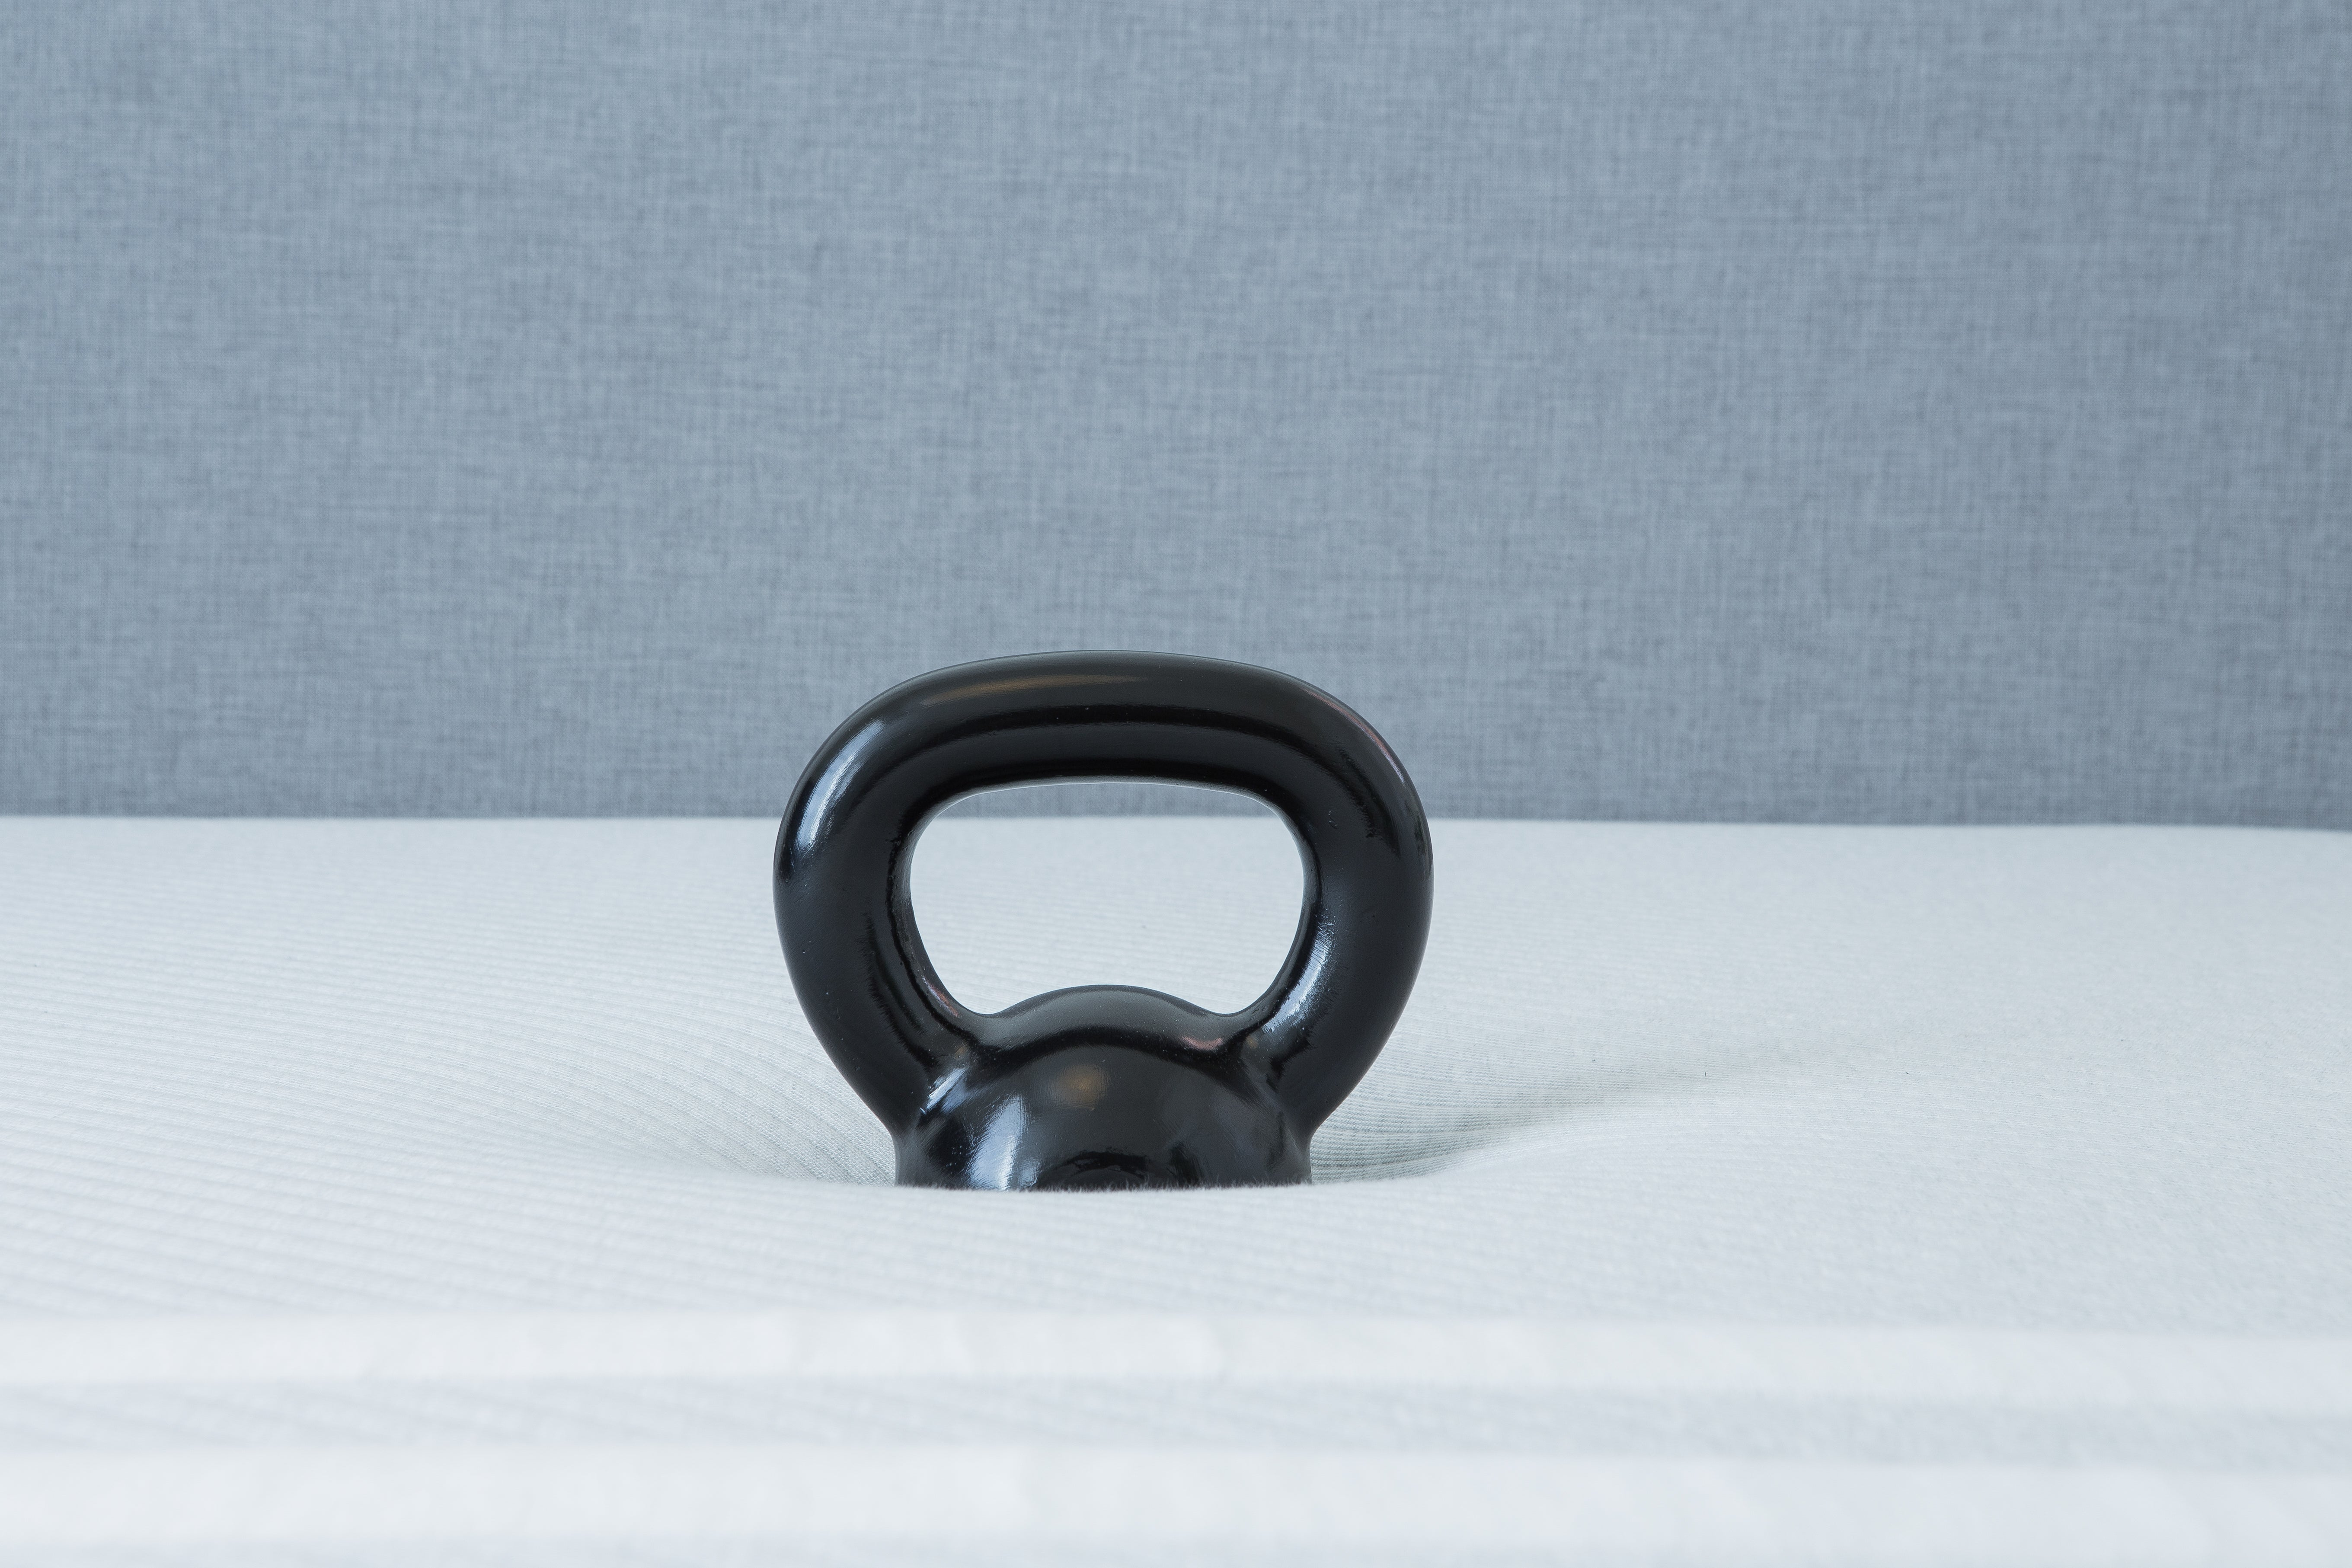 Kettlebell on a Leesa mattress